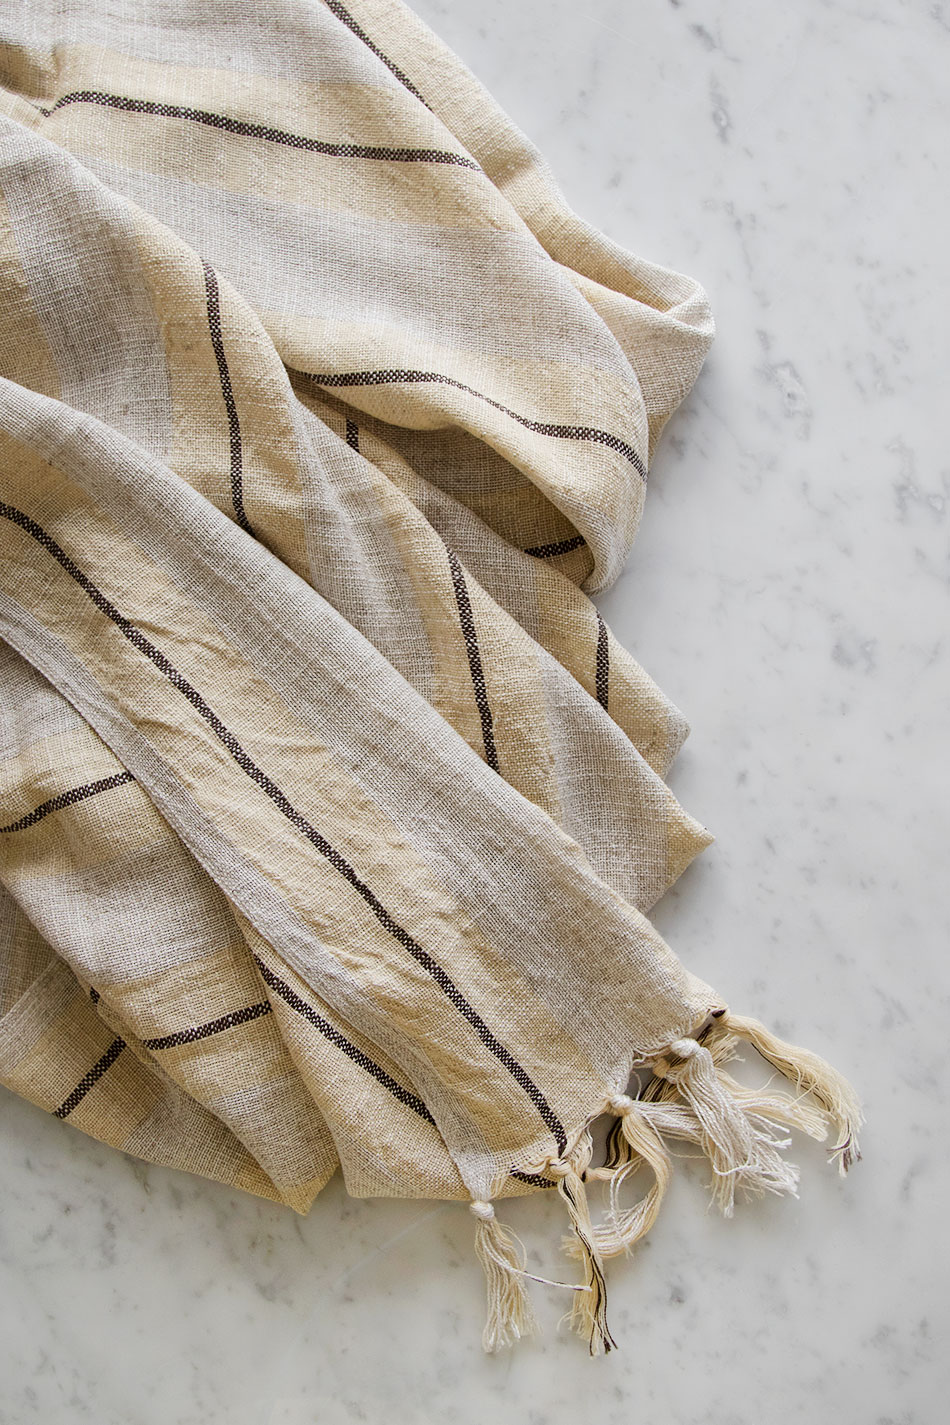 Linen Hamam Towel Yellow